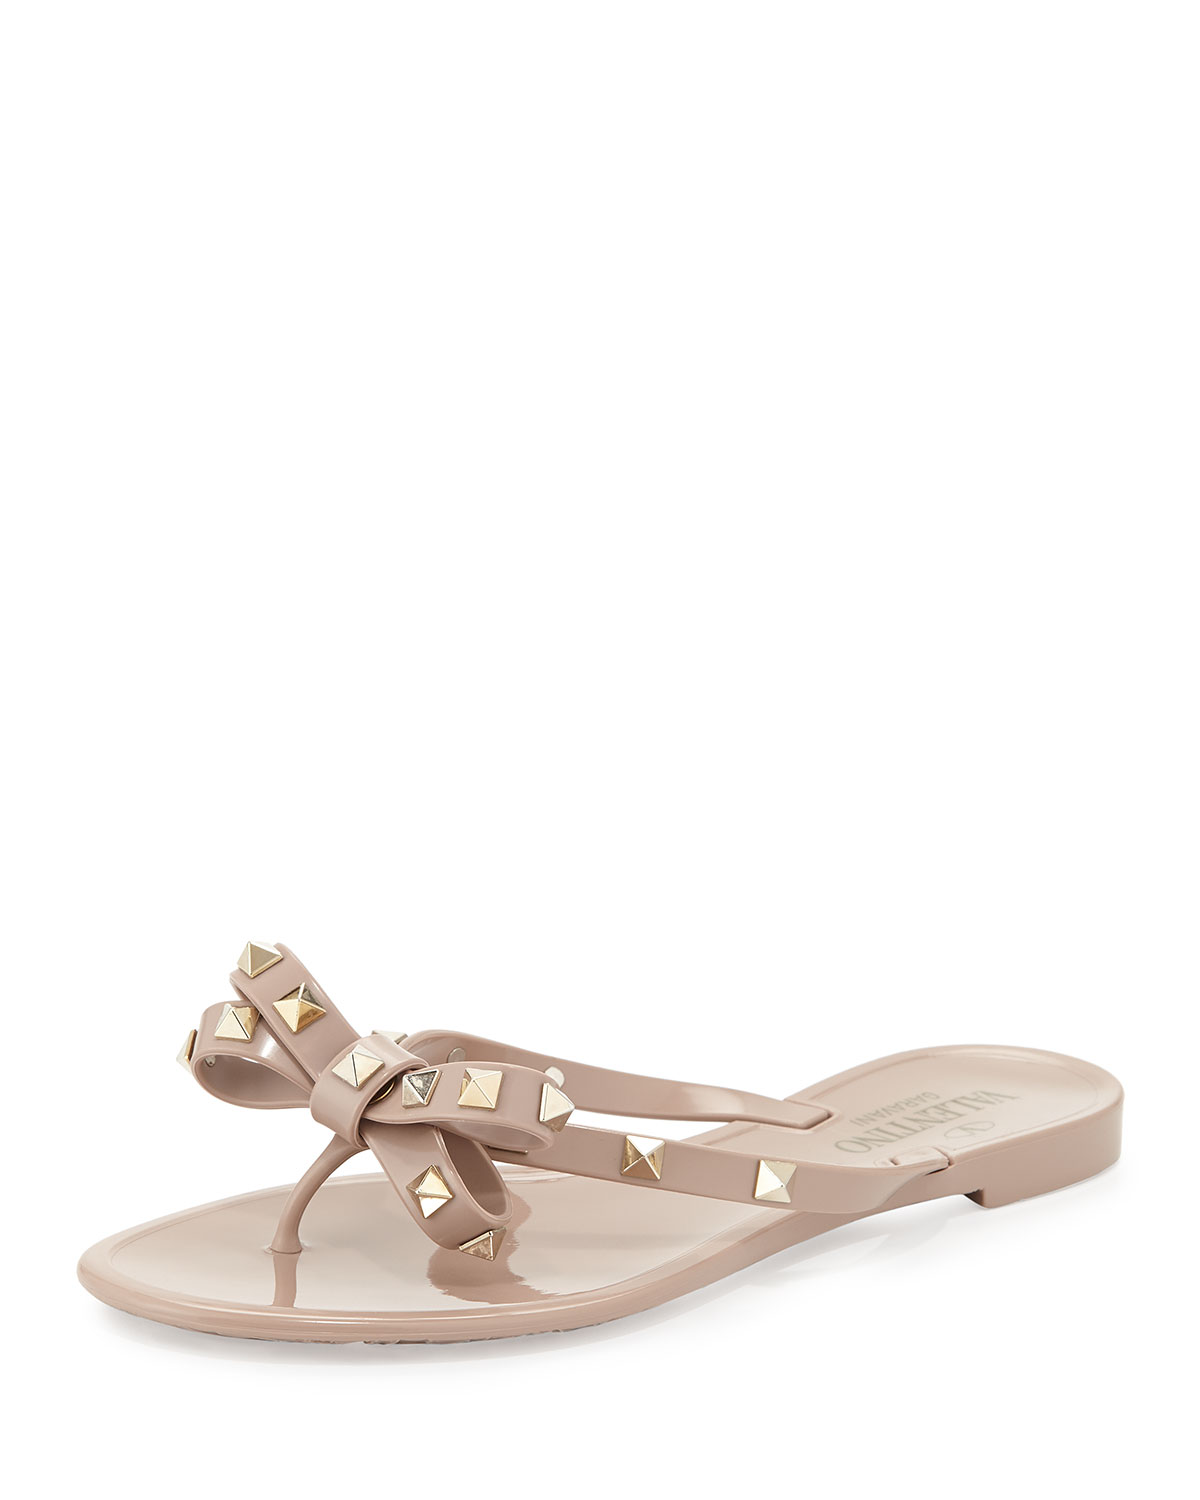 Valentino Sandals - Rockstud PVC Flip Flop Poudre - - Sandals for ladies Outlet Footlocker Finishline Outlet Cheap Factory Outlet Discount Pay With Visa wxnDL